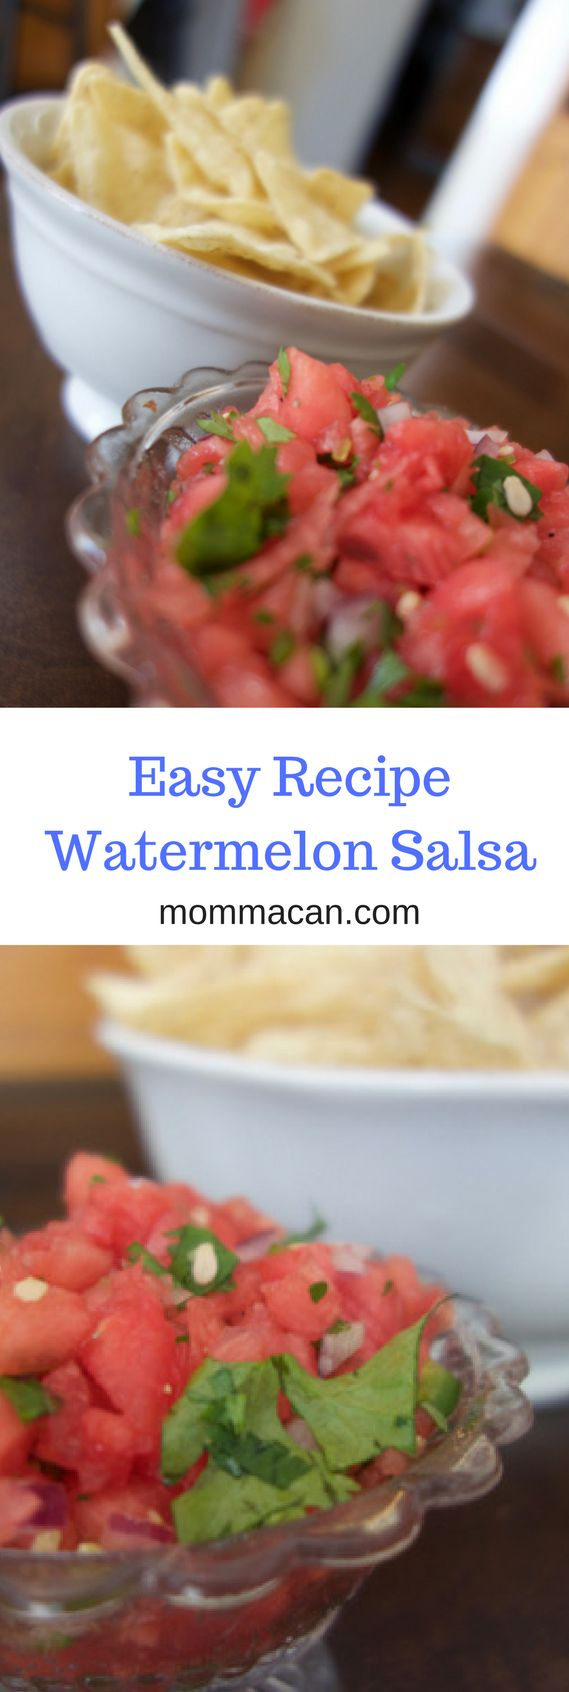 Yummy watermelon salsa recipe, perfect for tacos, grilled meats and as a fun addition to your salsa bar.  It tastes fantastic and is super easy to make.